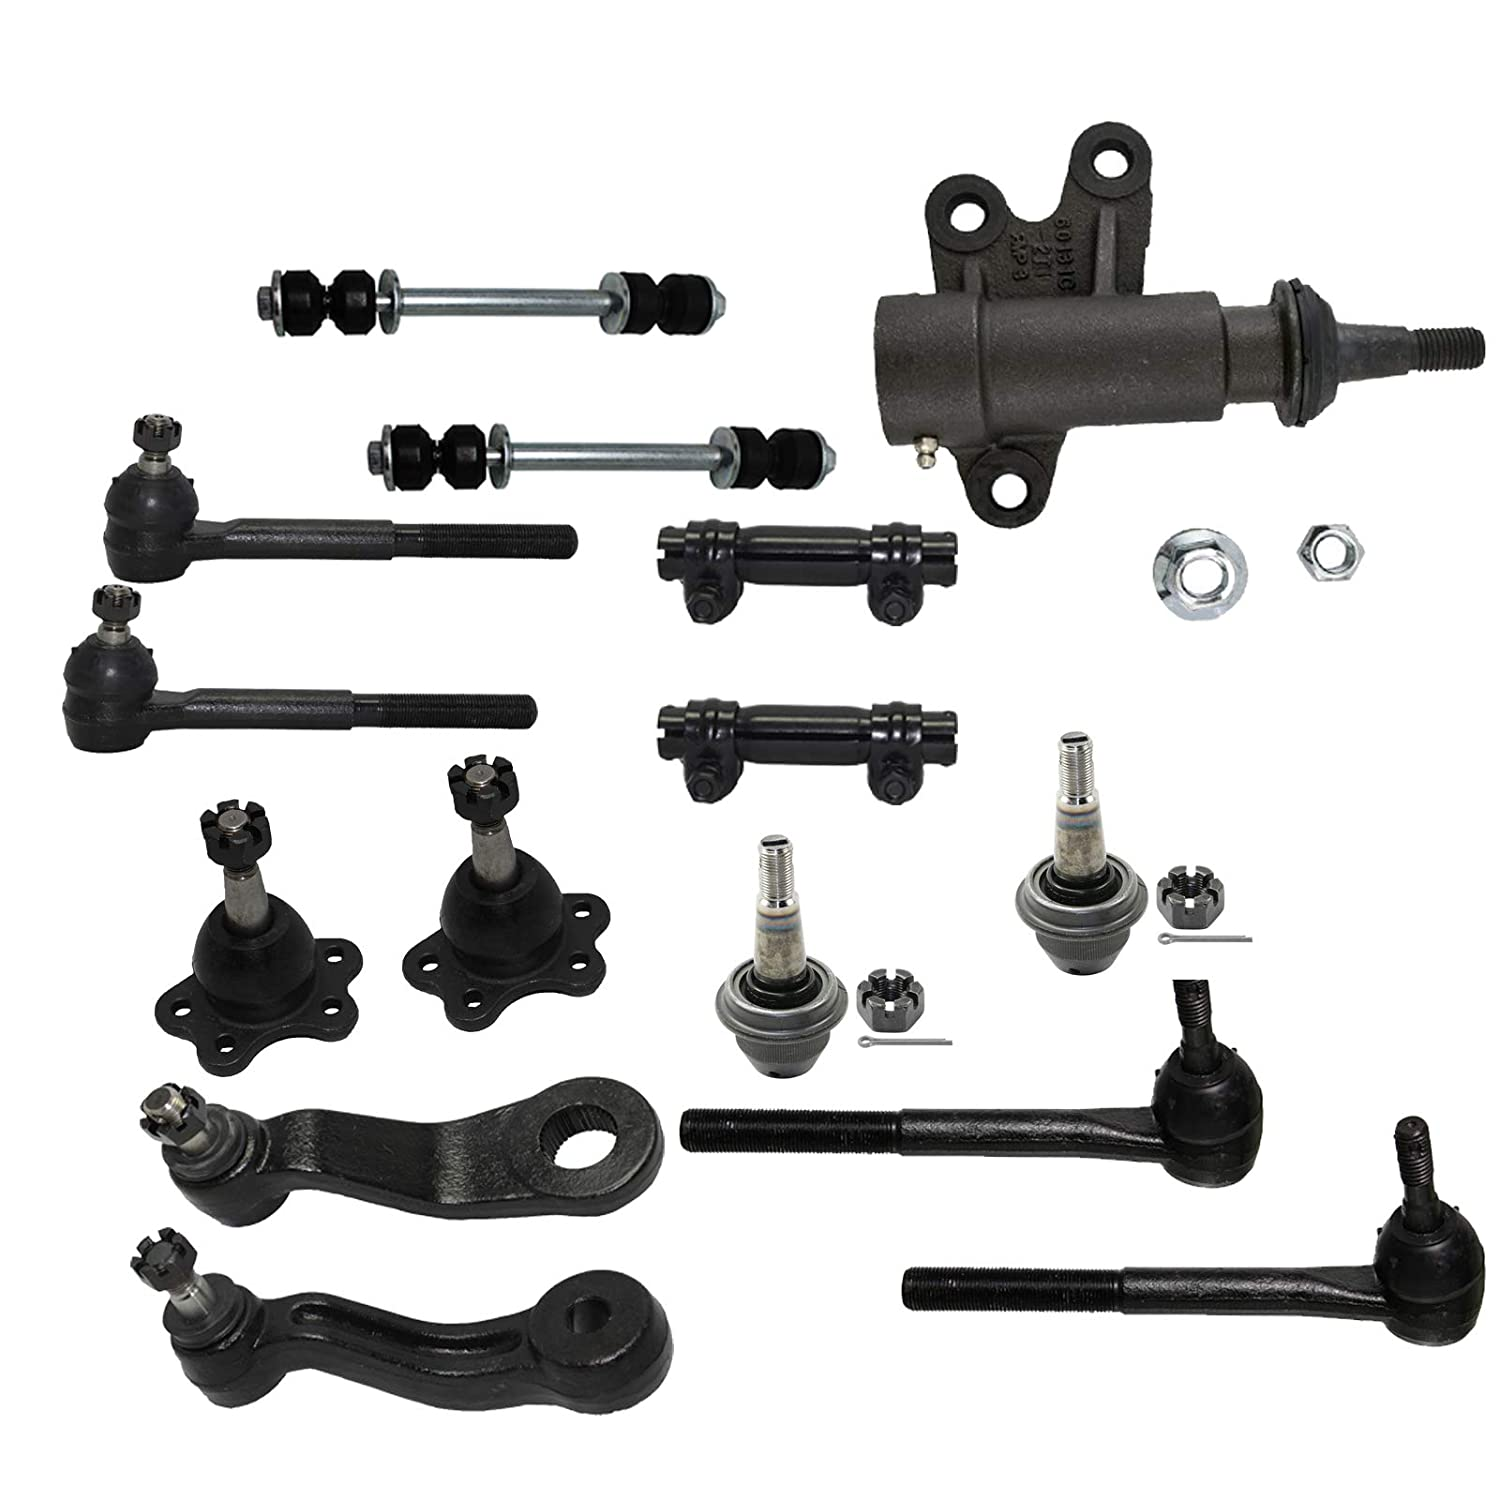 4WD Stamped Steel Lower Control Arms Models Detroit Axle 15PC Front Upper Lower Ball Joint Sway Bar and Inner Outer Tie Rod Kit for 1995-1999 Escalade K1500 K2500 K1500 Suburban Yukon Tahoe